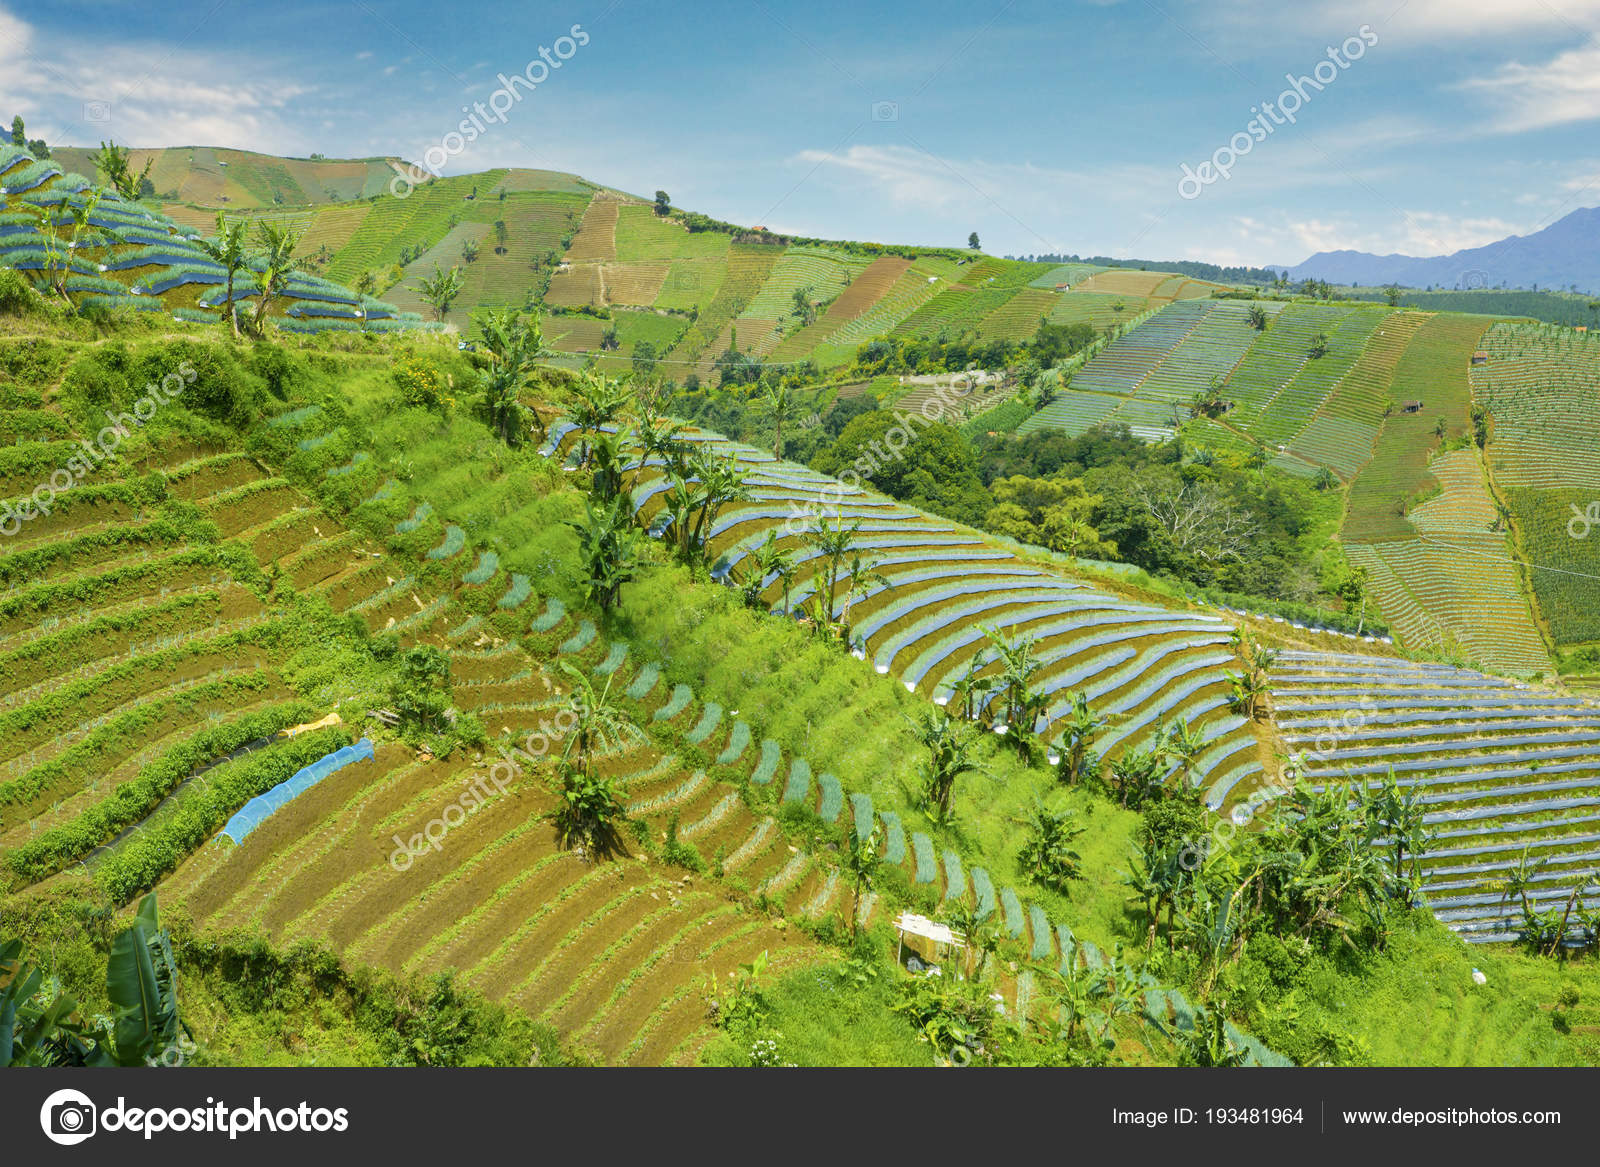 depositphotos_193481964-stock-photo-terraced-fields-in-majalengka Info Landscape Photography Keywords Now Guide @capturingmomentsphotography.net